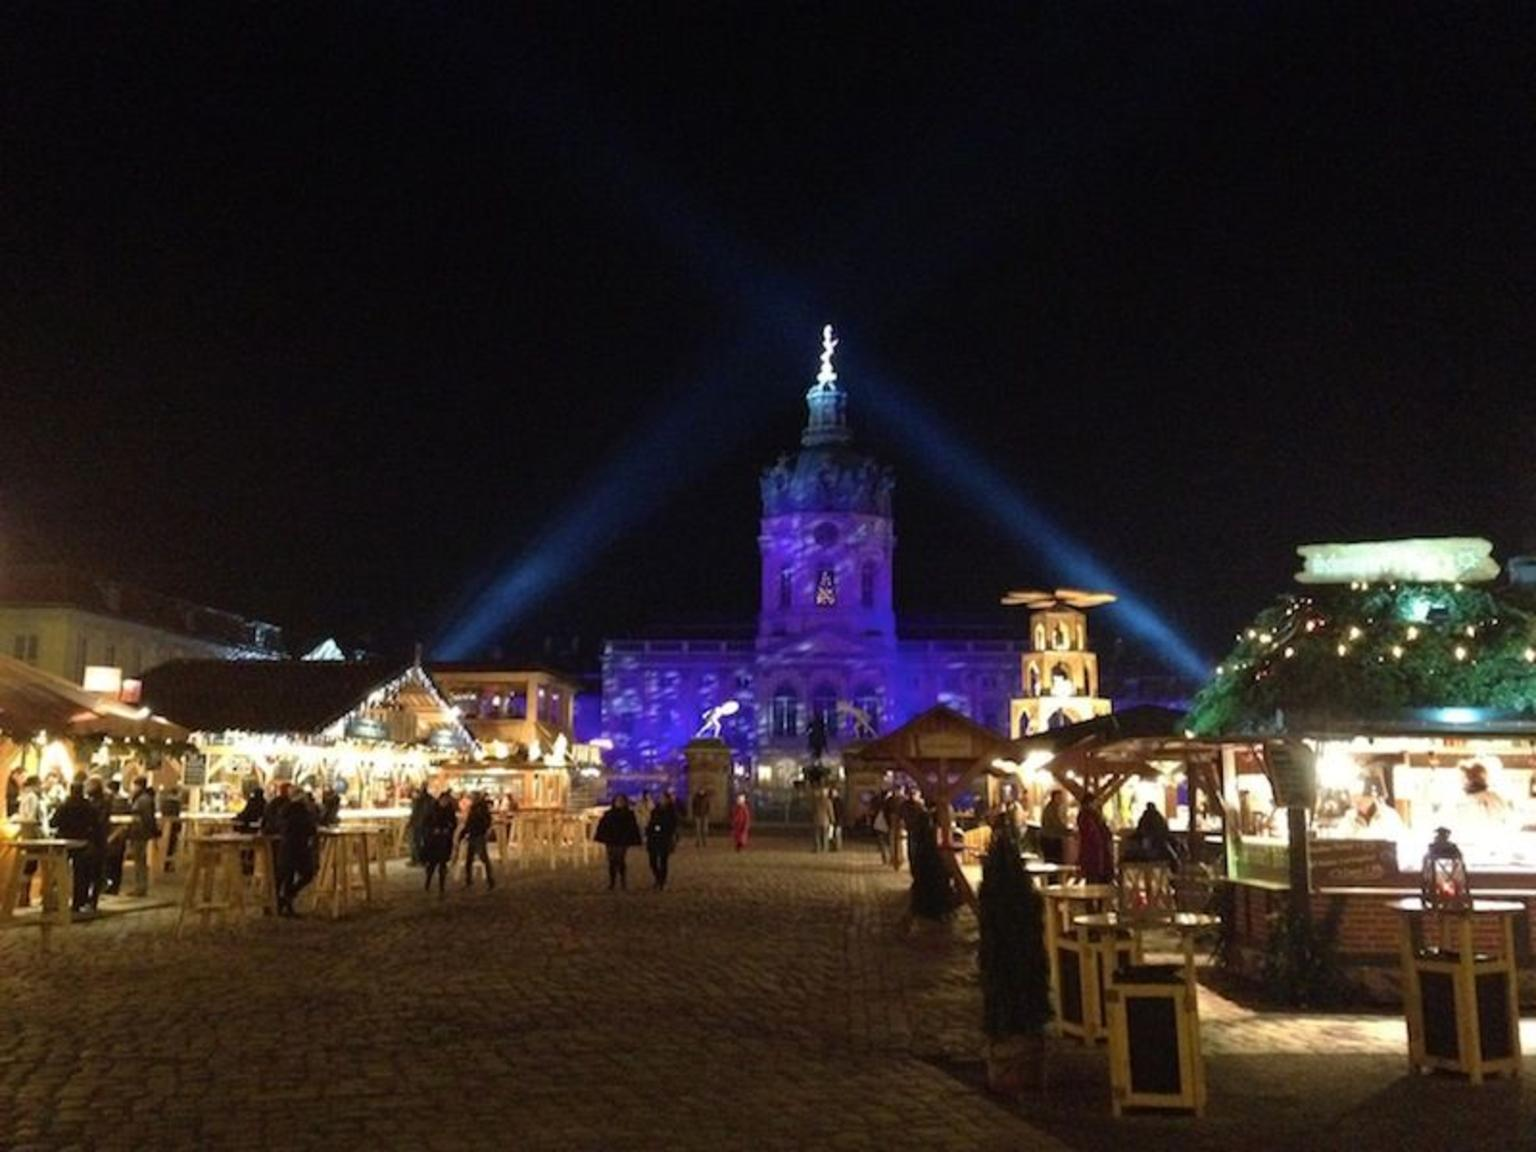 MORE PHOTOS, Berlin Christmas Markets Walking Tour